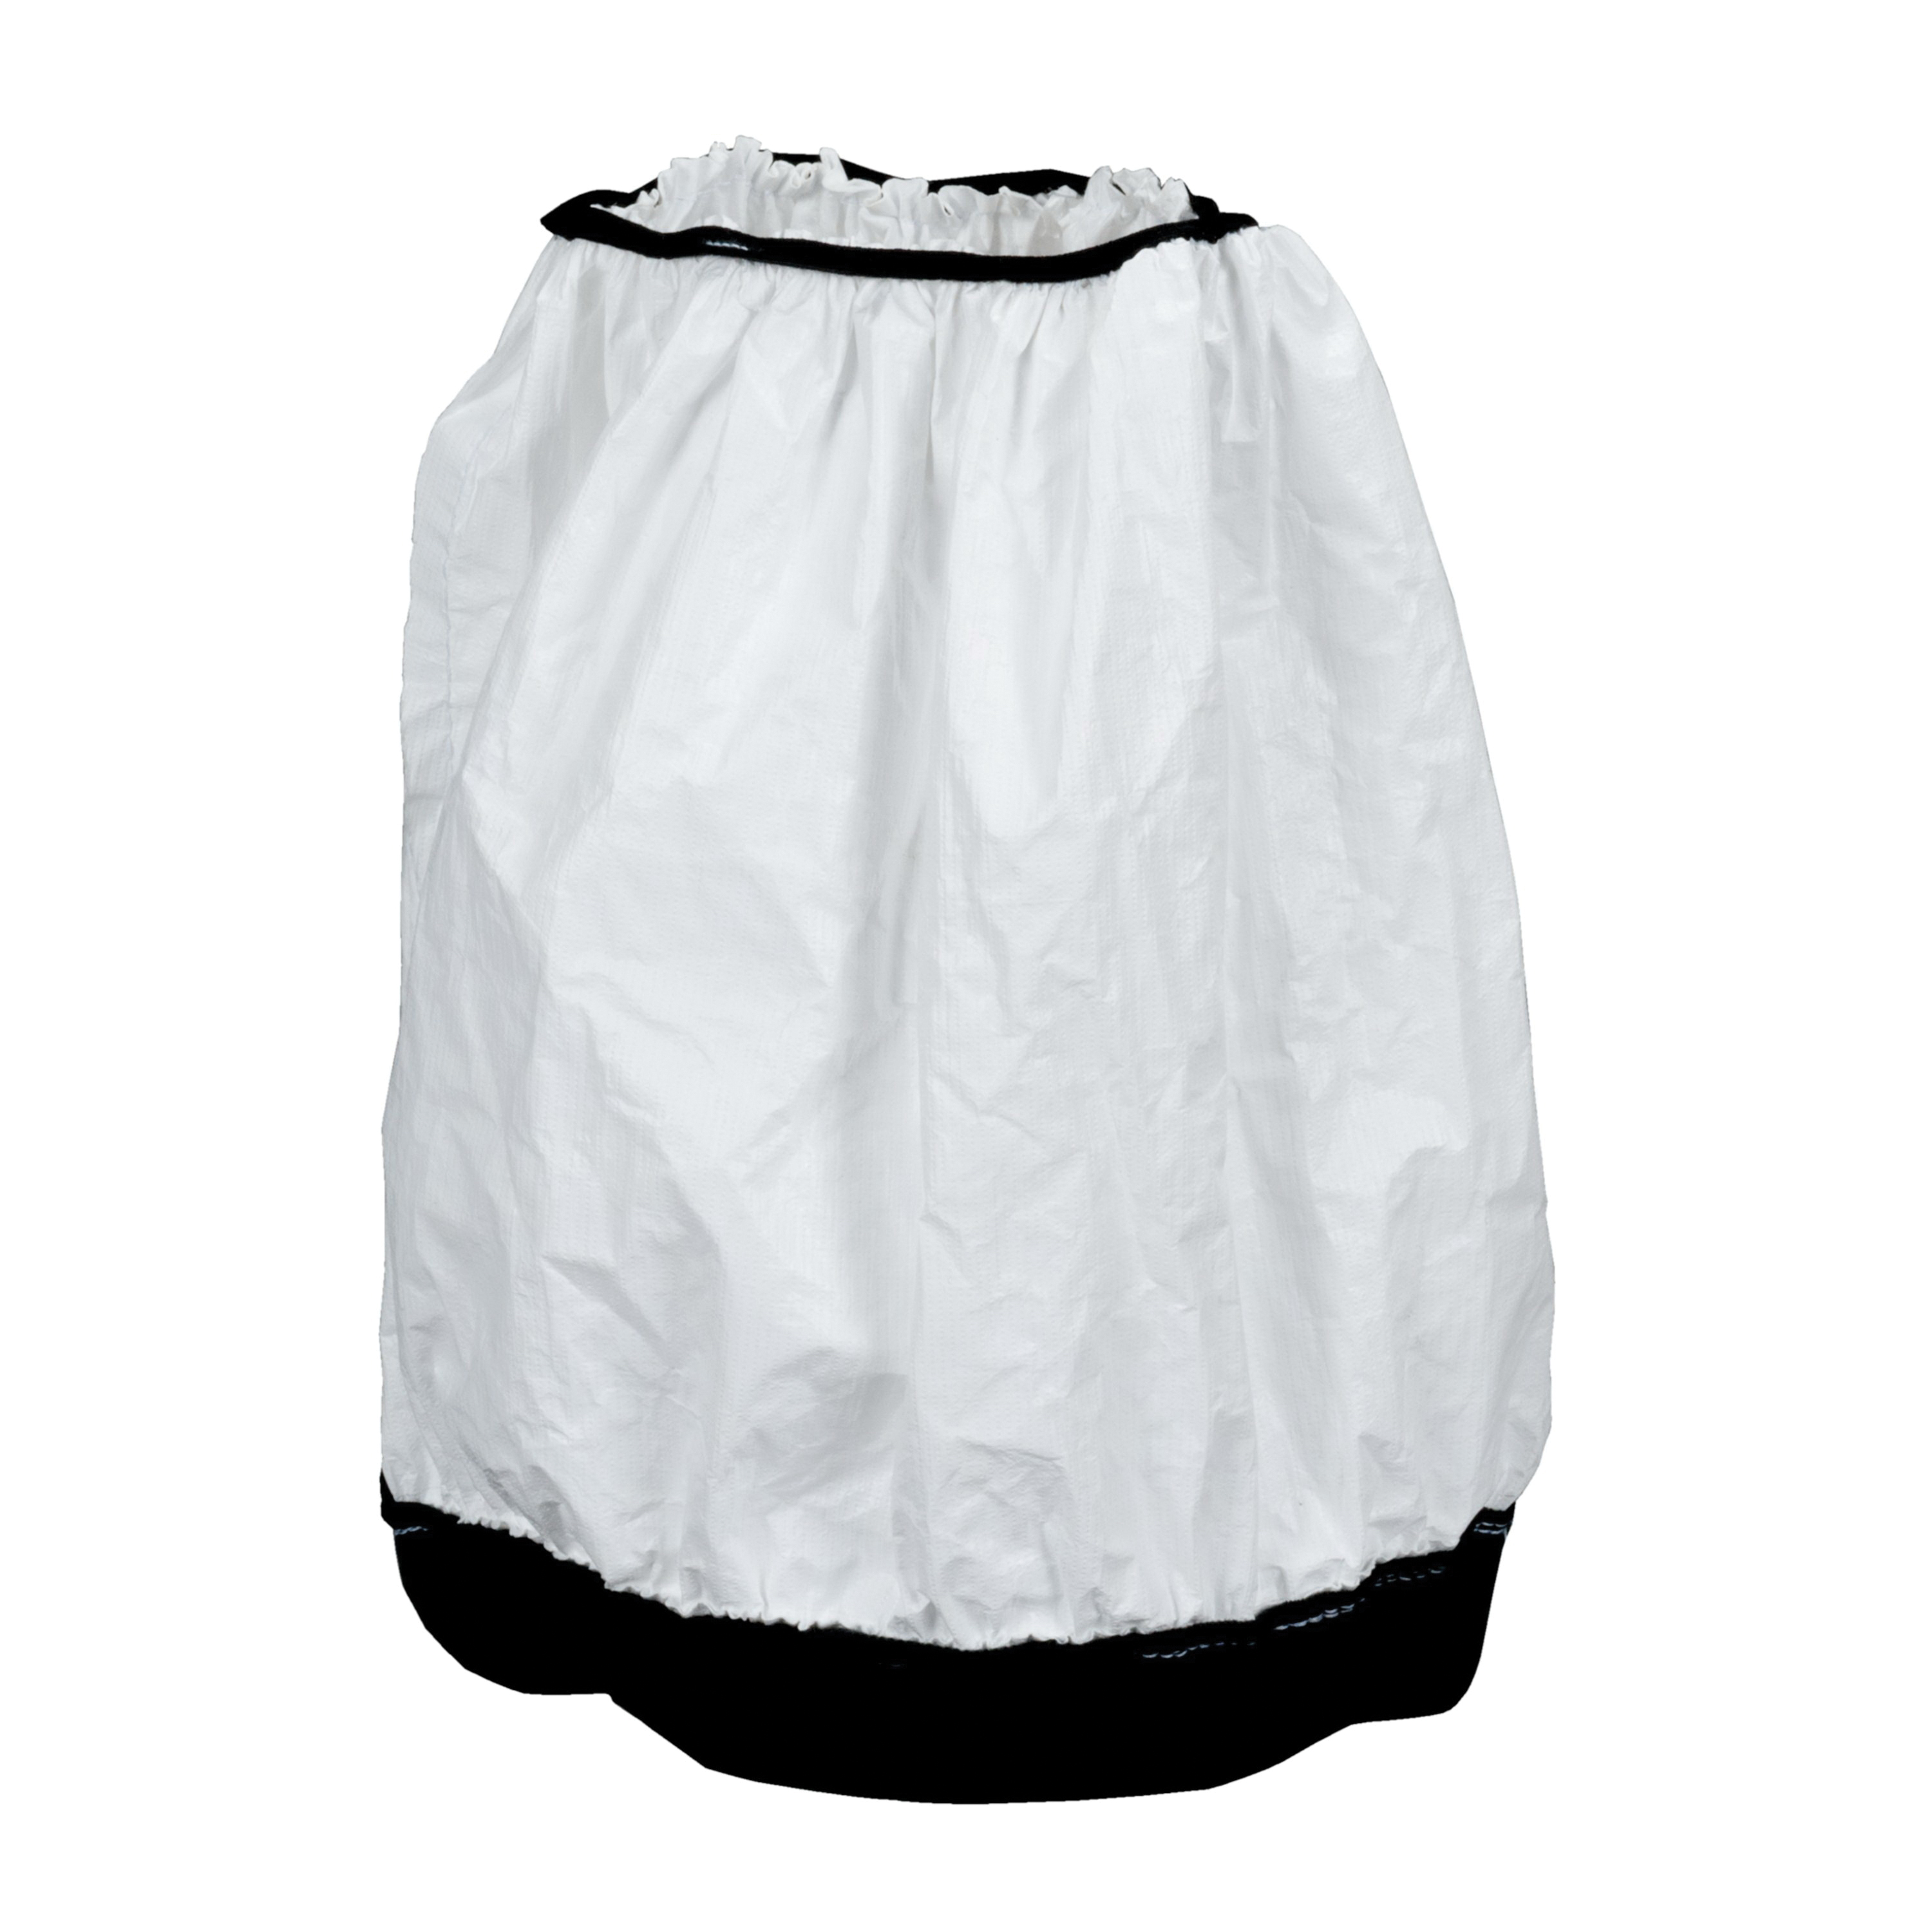 3M™ 051131-37090 L Series Inner Shroud, For Use With L-223, L-225-2, L-227 and L-228-2 Outer Shrouds, White, Specifications Met: ANSI Z87.1-2010